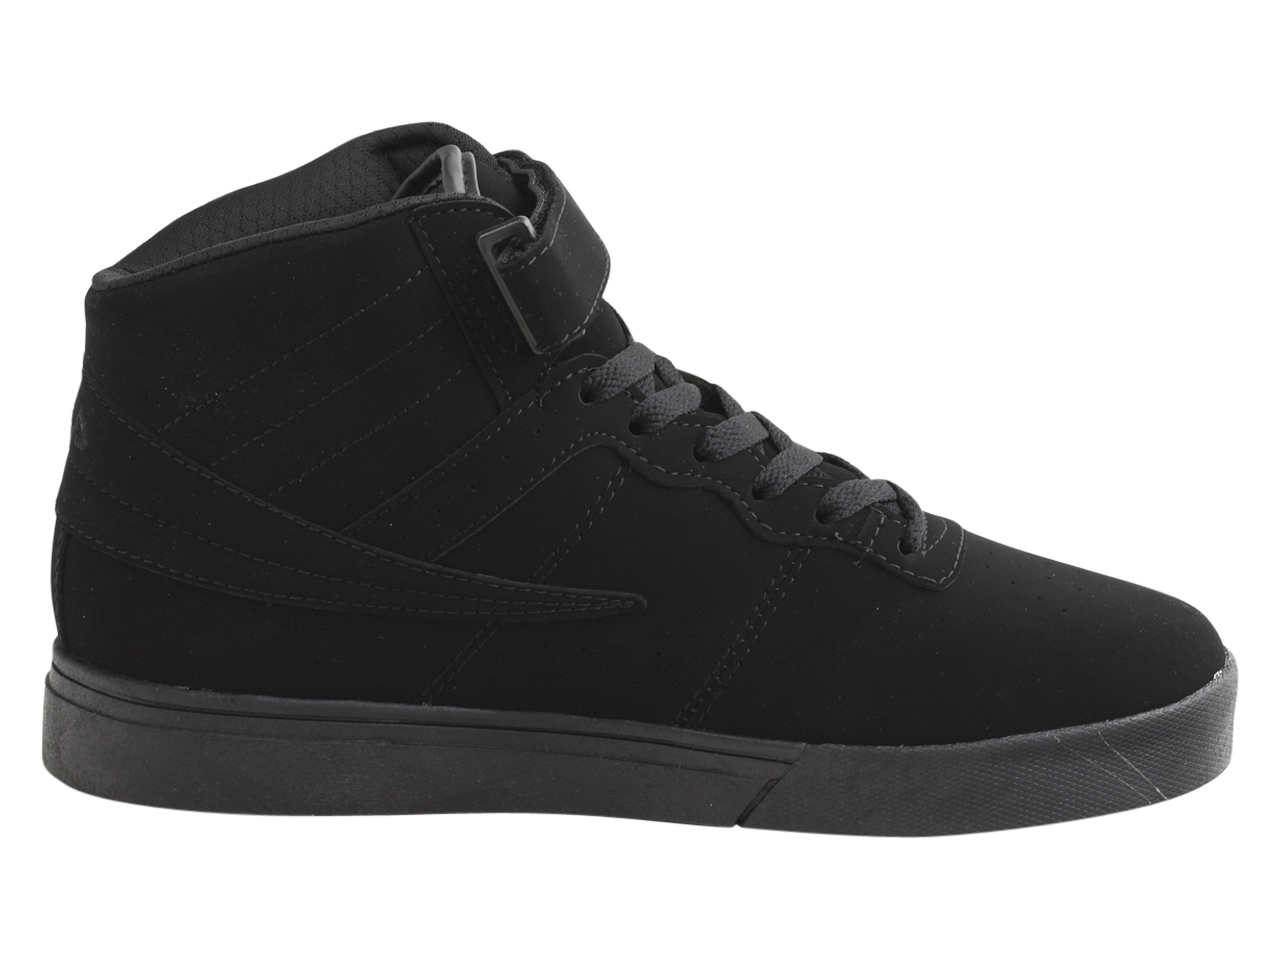 Fila-Men-039-s-Vulc-13-Mid-Plus-Sneakers-Shoes thumbnail 12